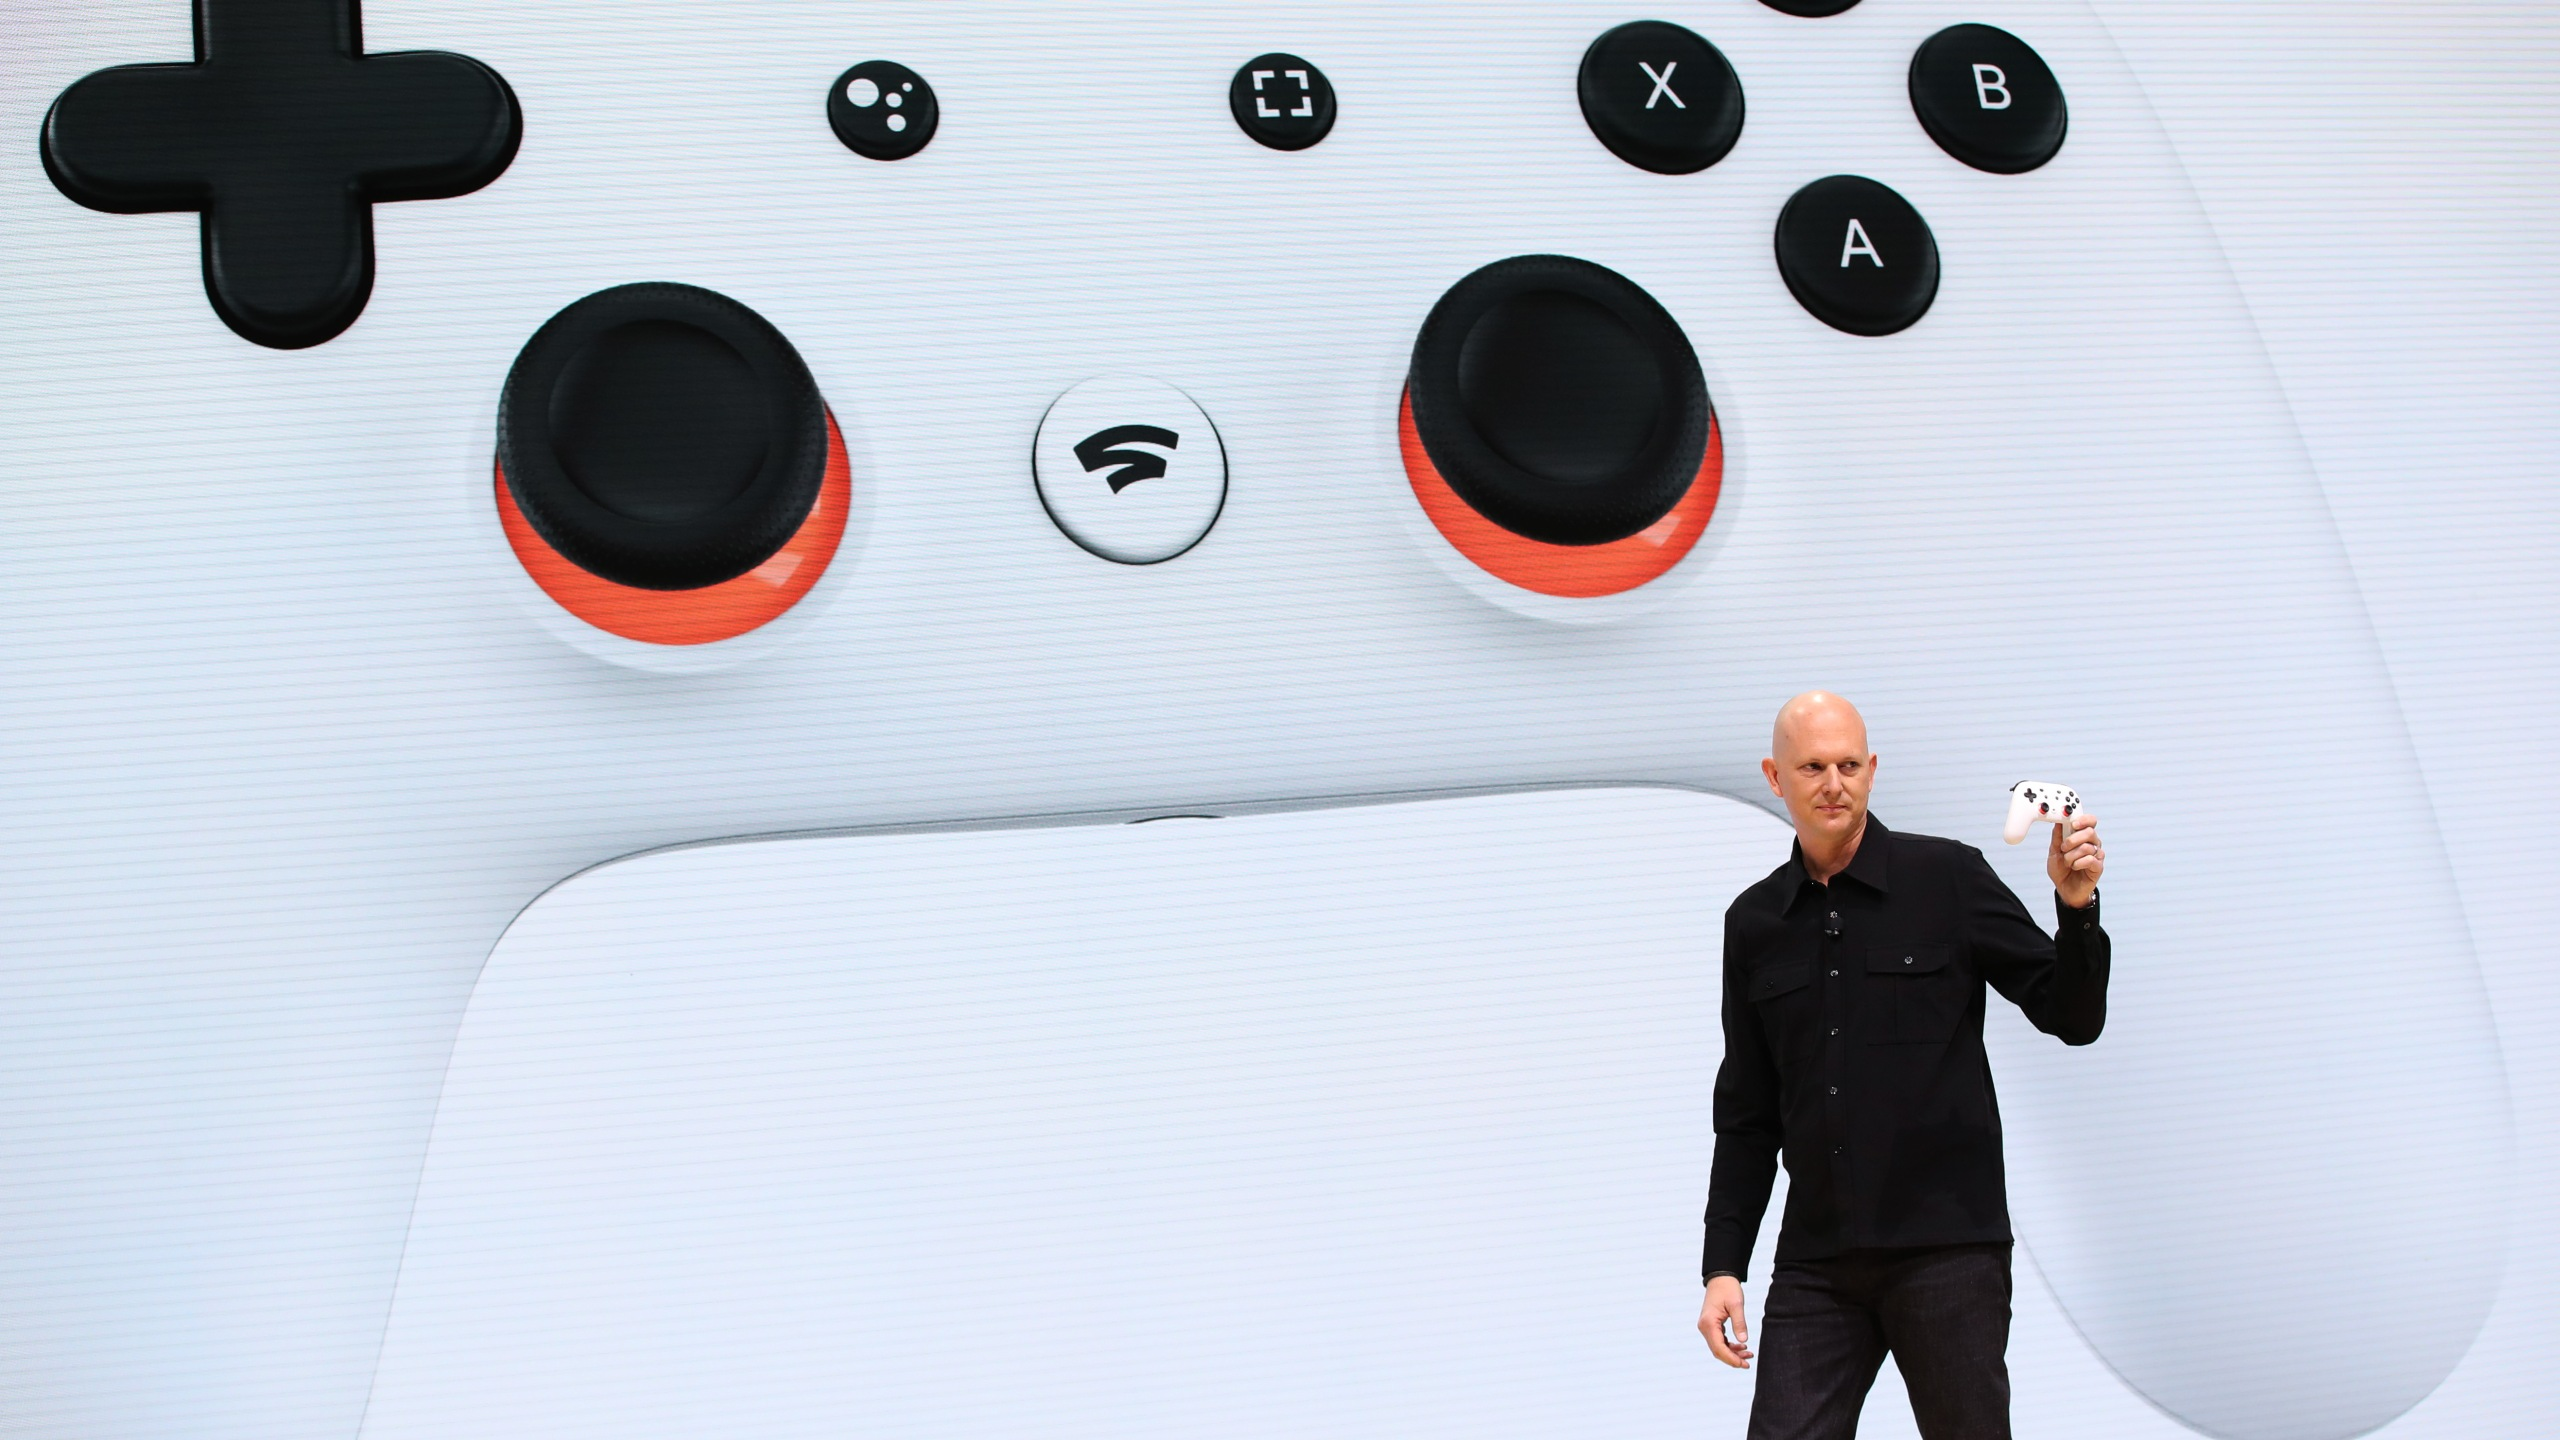 Google vice president and general manager Phil Harrison shows the new Stadia controller as he speaks during the GDC Game Developers Conference on March 19, 2019 in San Francisco, California. (Credit: Justin Sullivan/Getty Images)